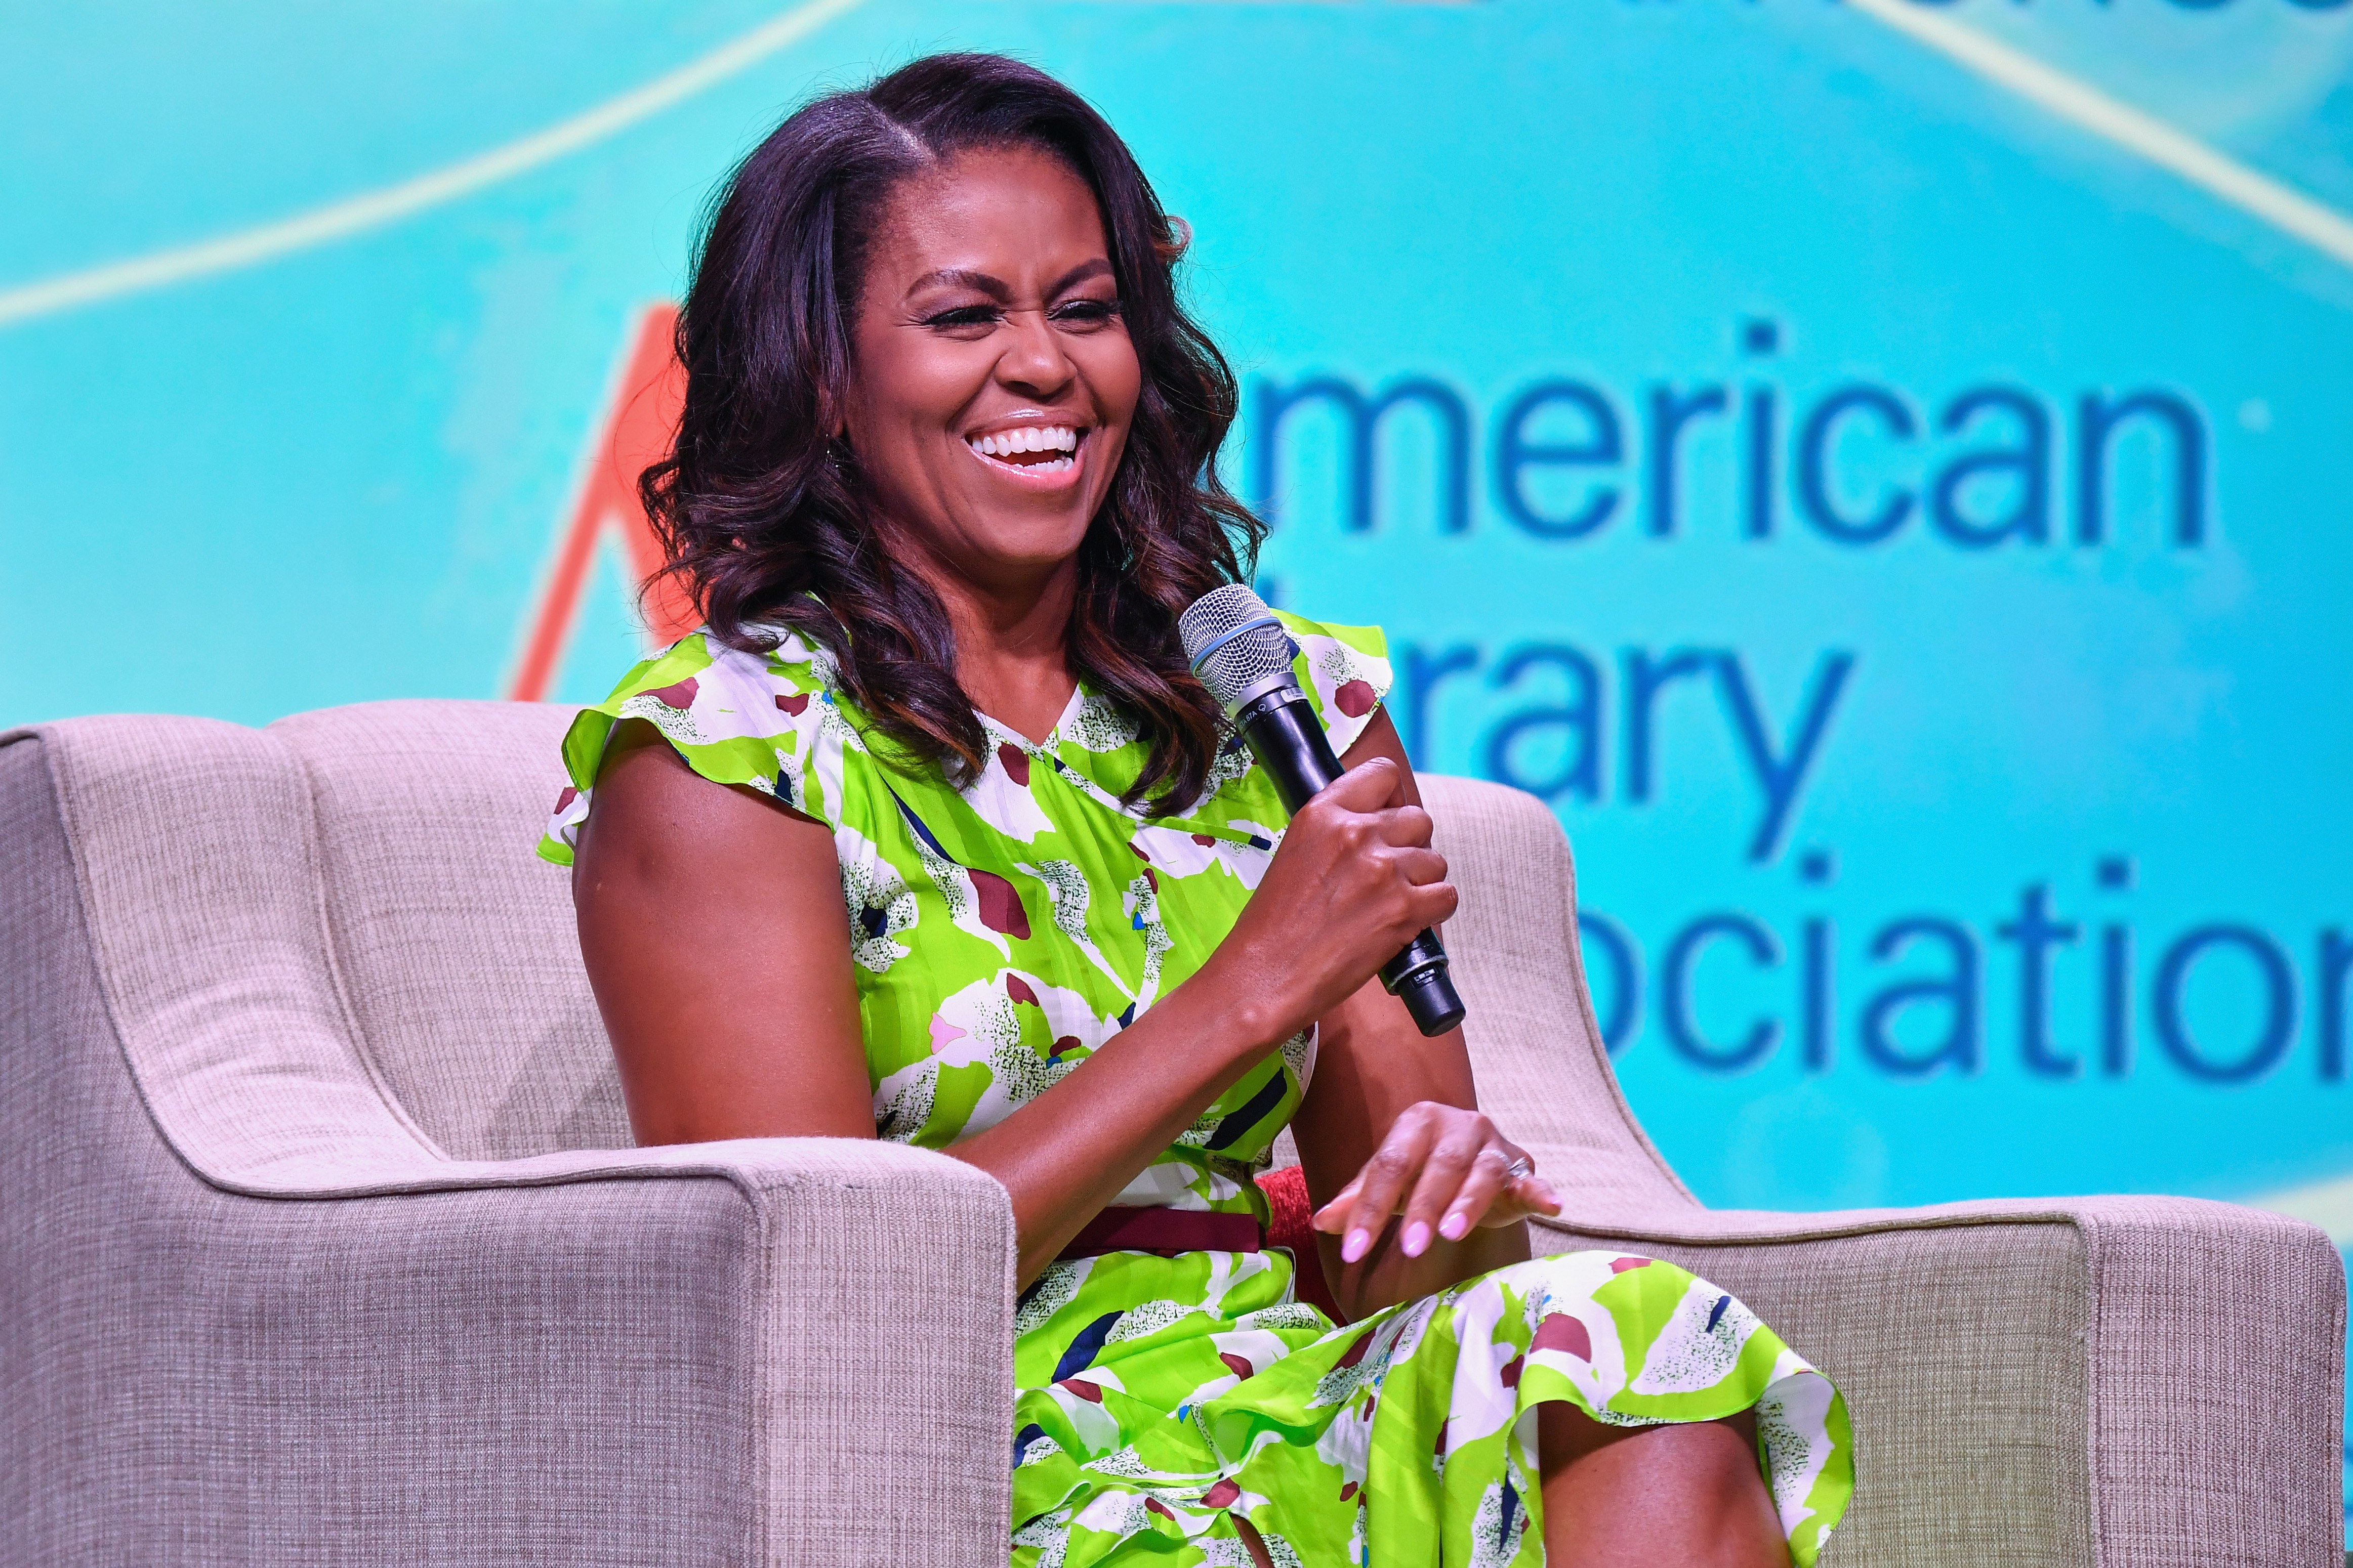 ormer First Lady of the United States Michelle Obama speaks during the Opening General Session of the 2018 American Library Association Annual Conference at Ernest N. Morial Convention Center in New Orleans, Louisiana on June 22, 2018.